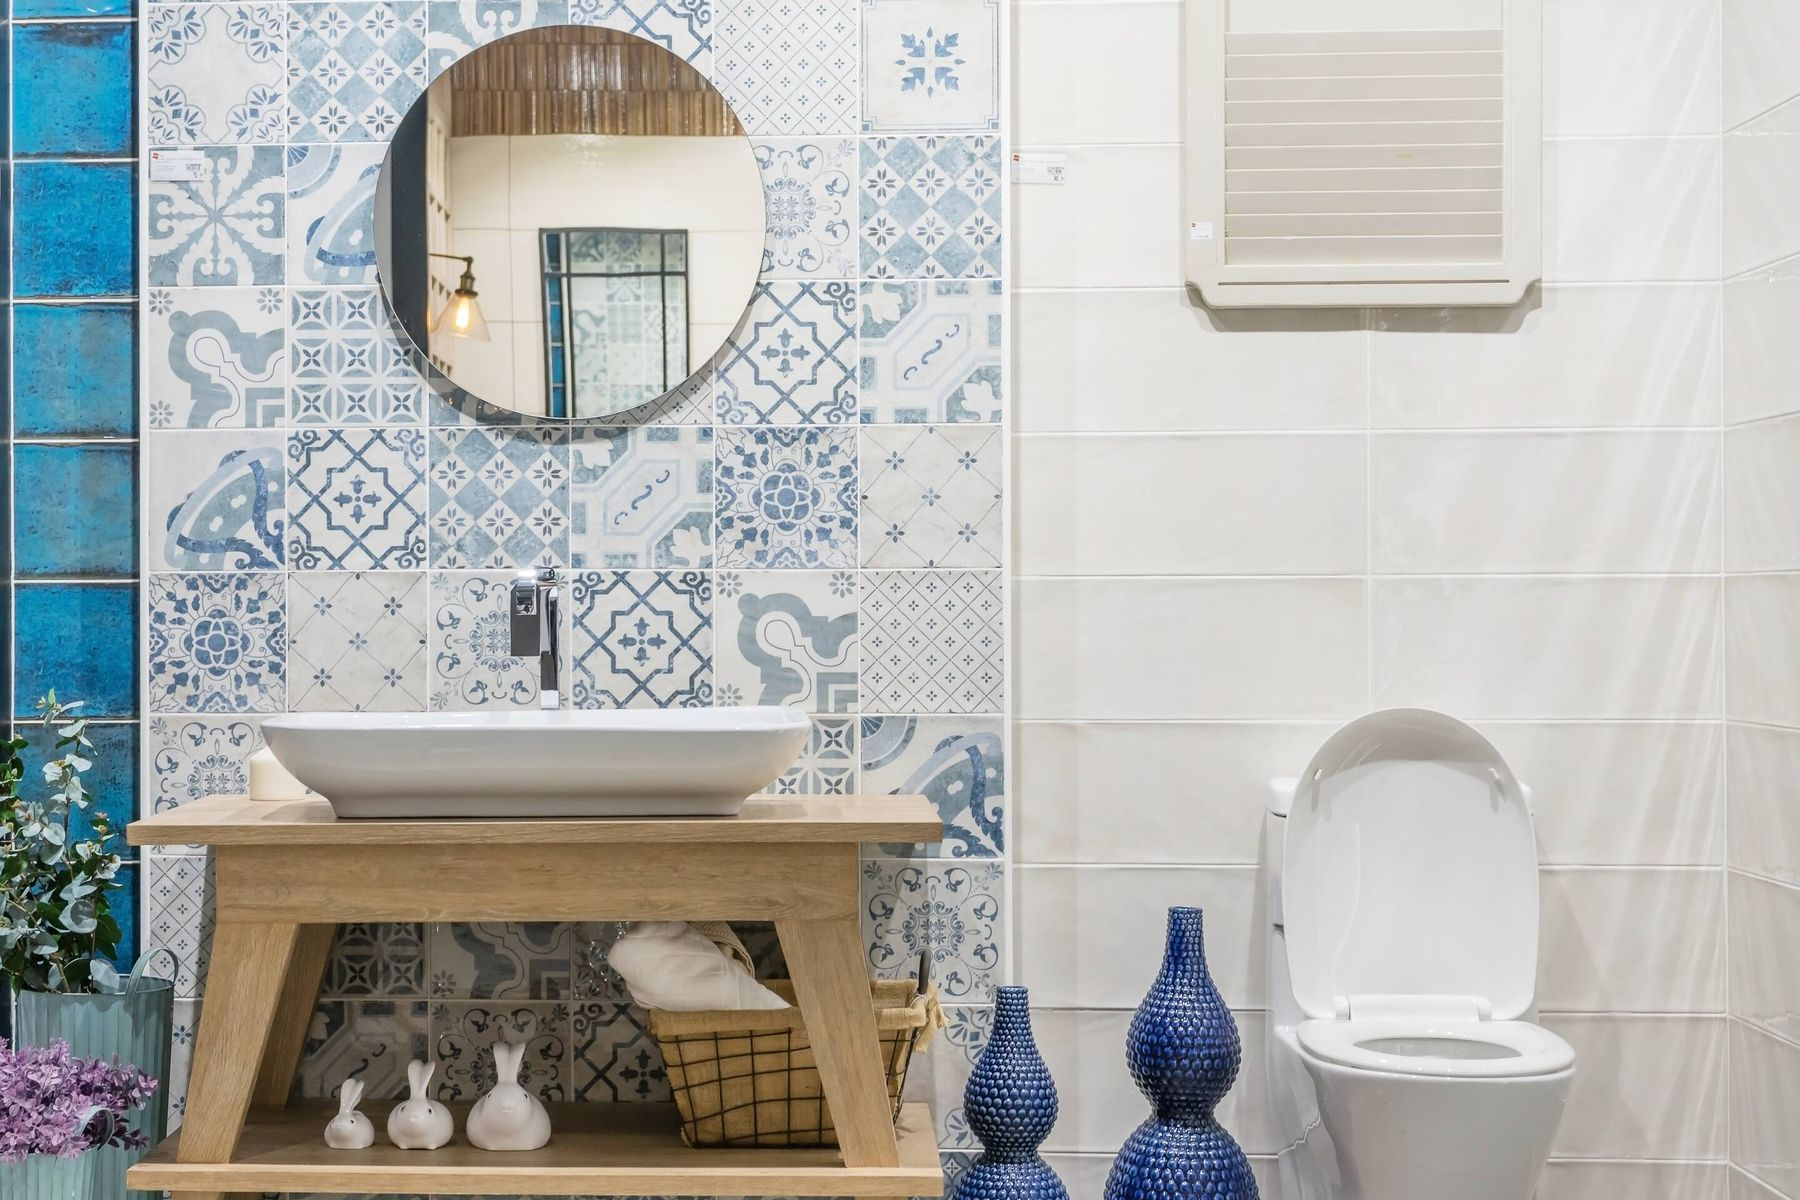 Simple Home Ingredients to Keep Your Bathroom Sparkling the Natural Way